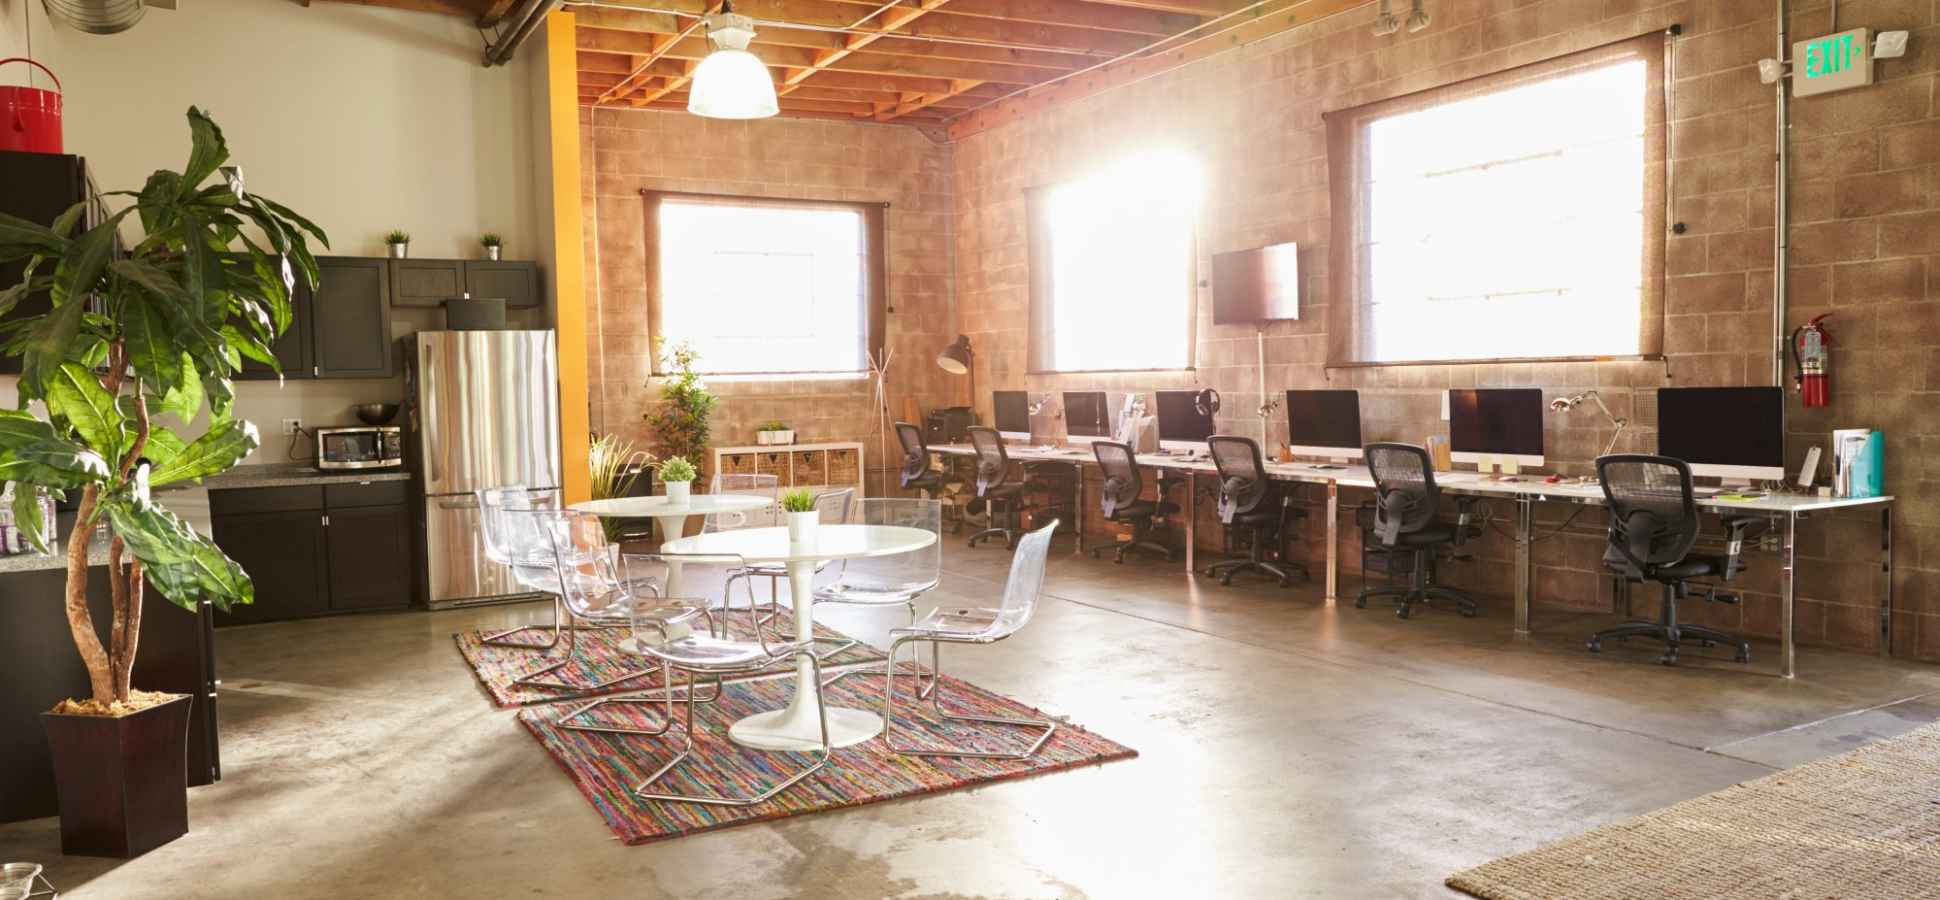 How to use your workspace to ignite your culture